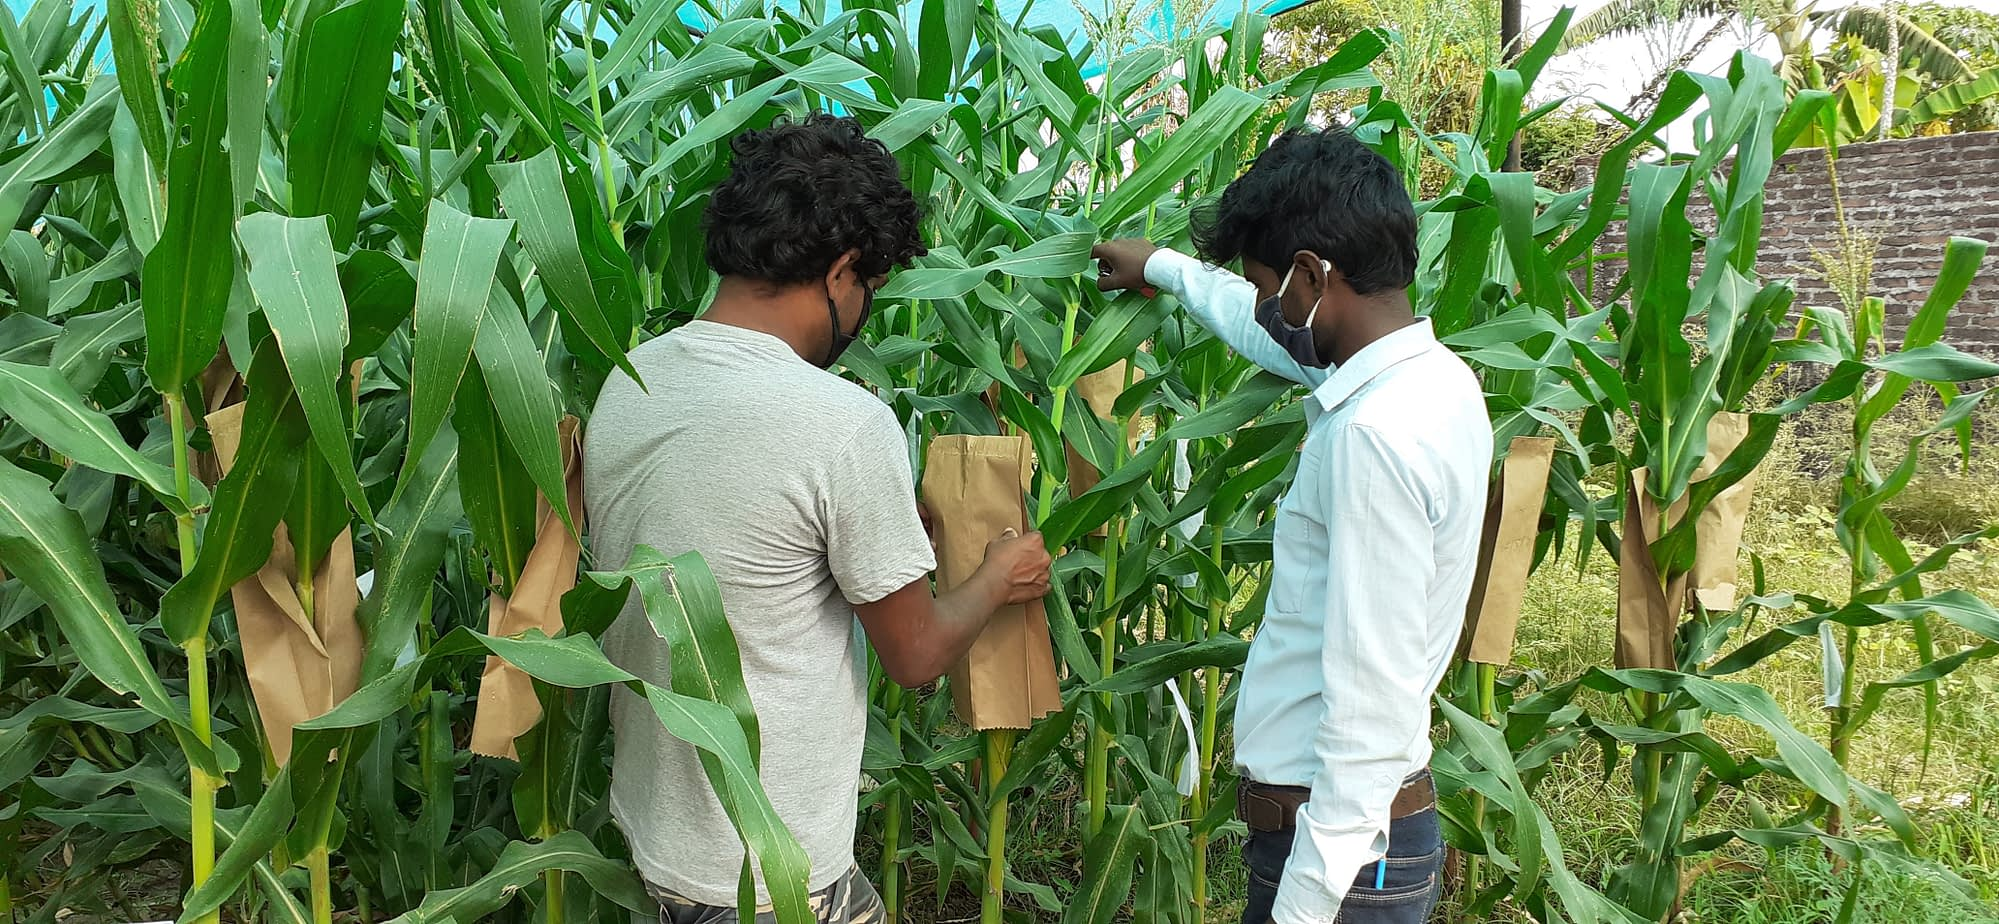 Private seed companies bag maize for selfing new maize product. (Photo: Arun Thapa/CIMMYT)